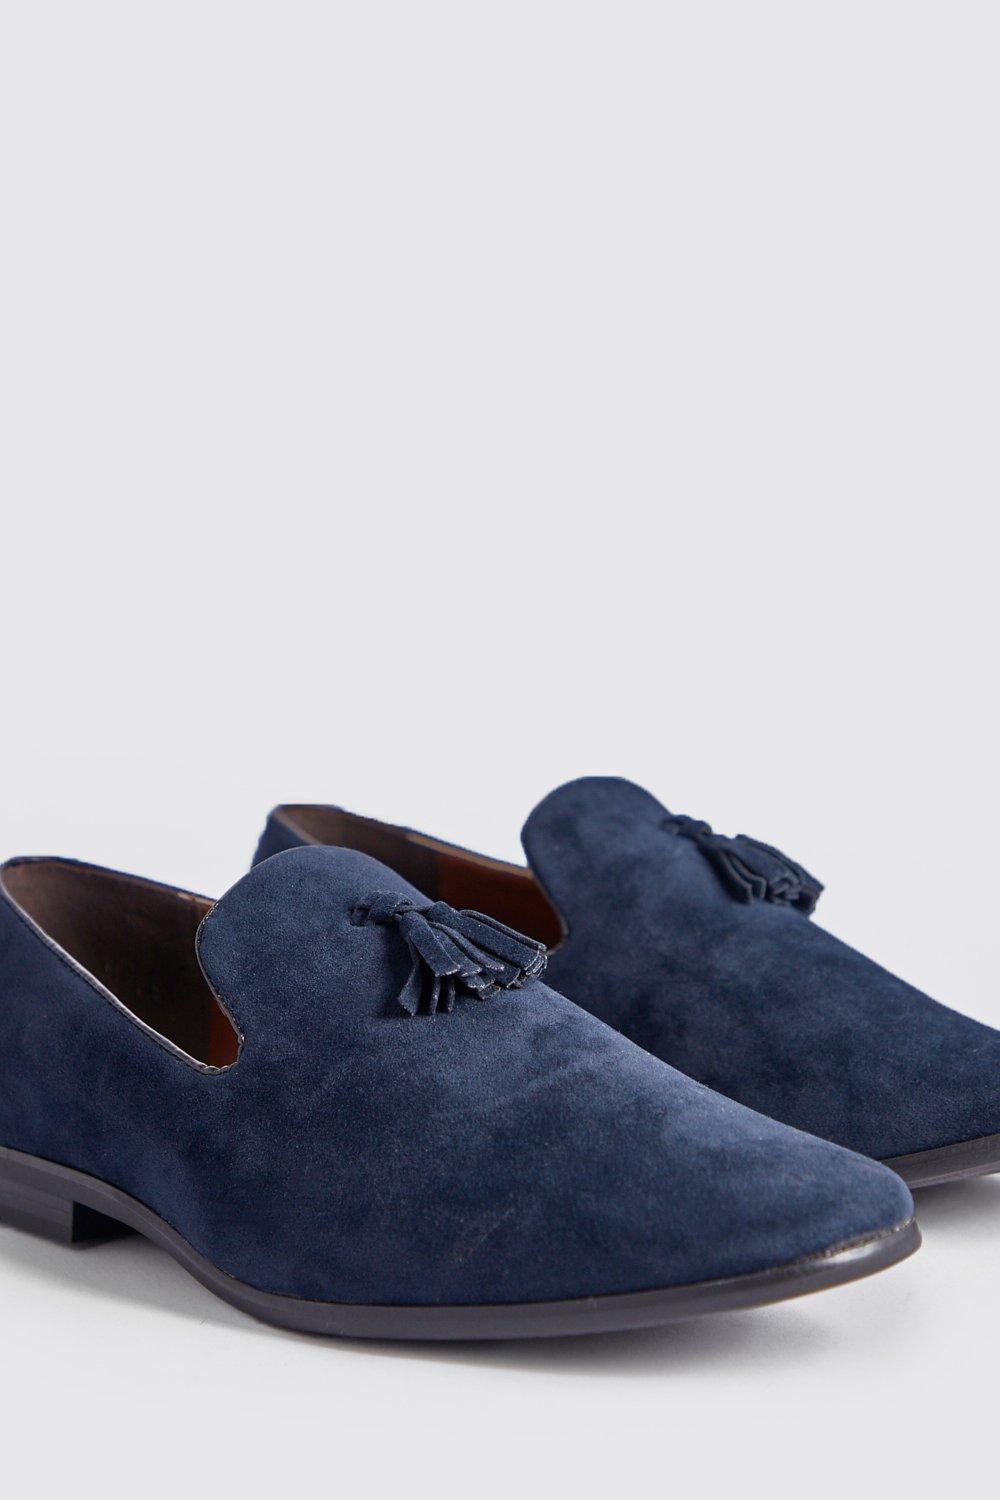 Suede Look Tassel Loafer